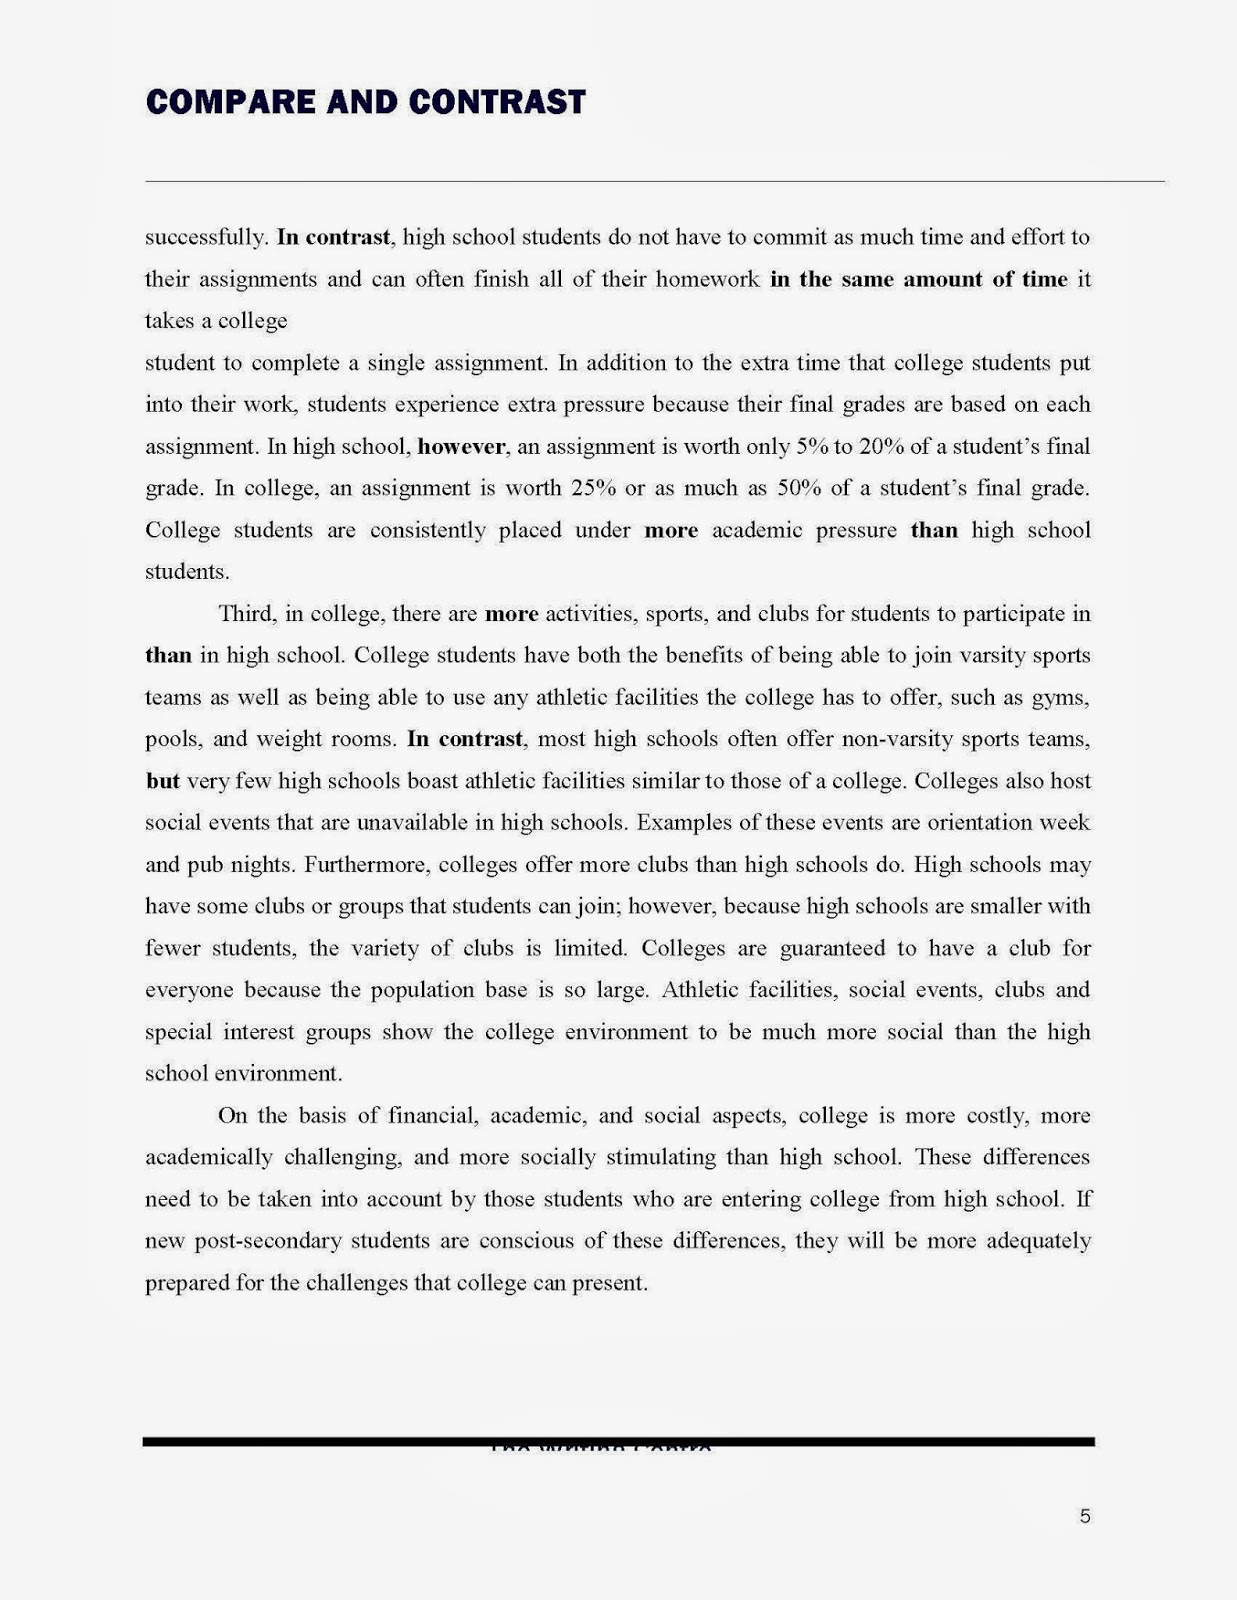 social interaction essay pharmcas essay pharmcas essay oglasi  essay on the giver by lois lowry essay on the book the giver by compare and